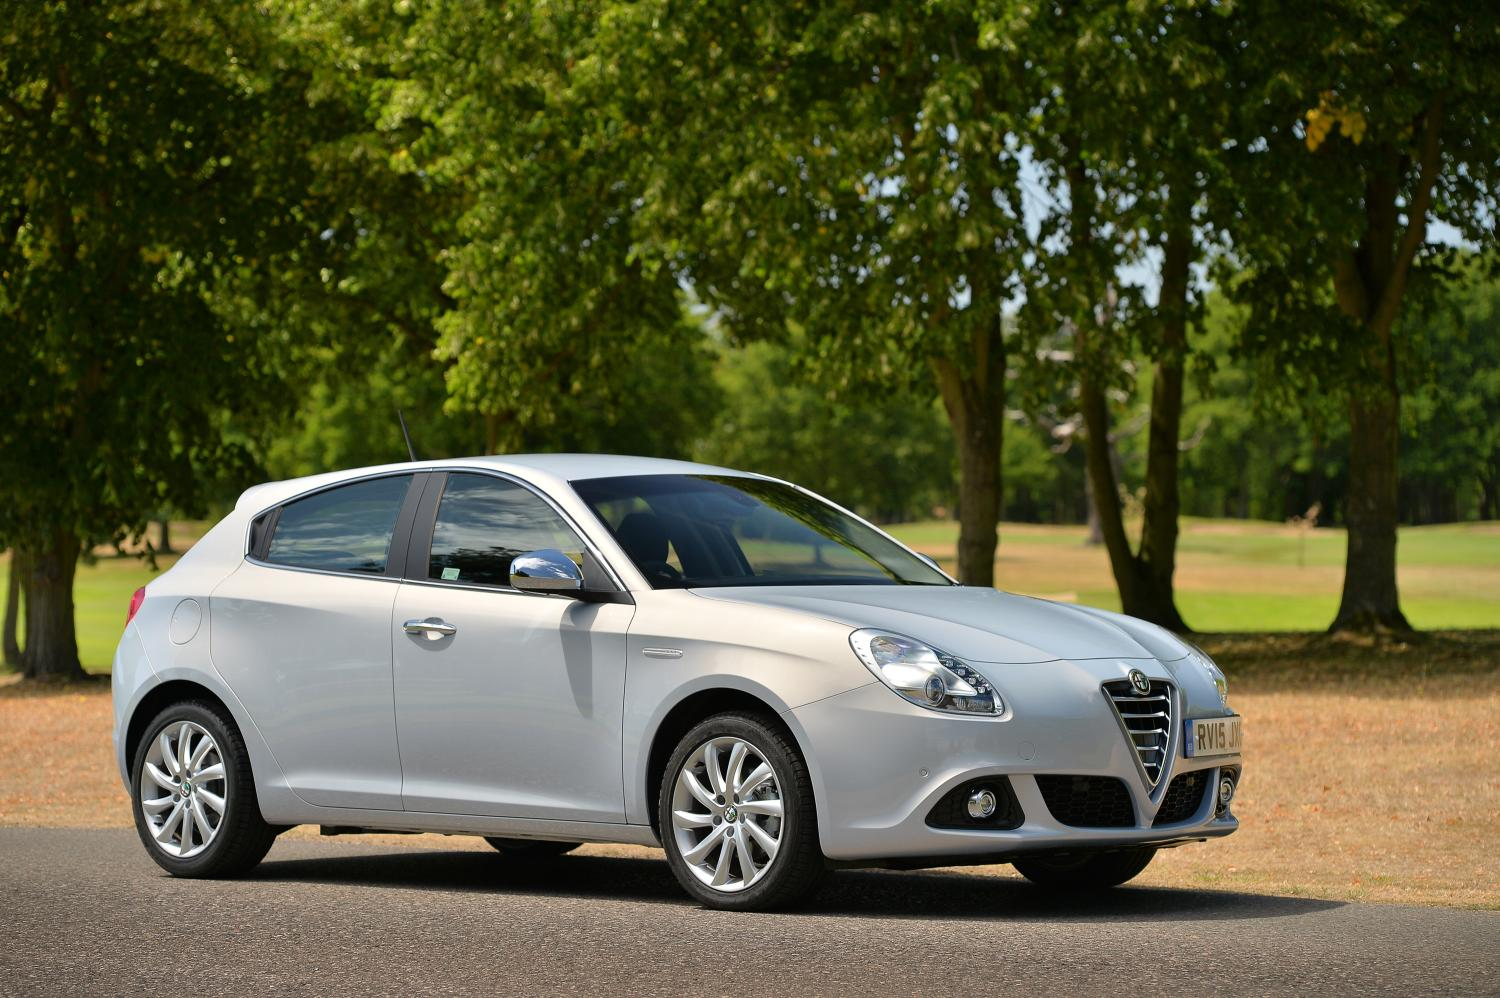 Alfa Romeo Improves Efficiency And Performance For